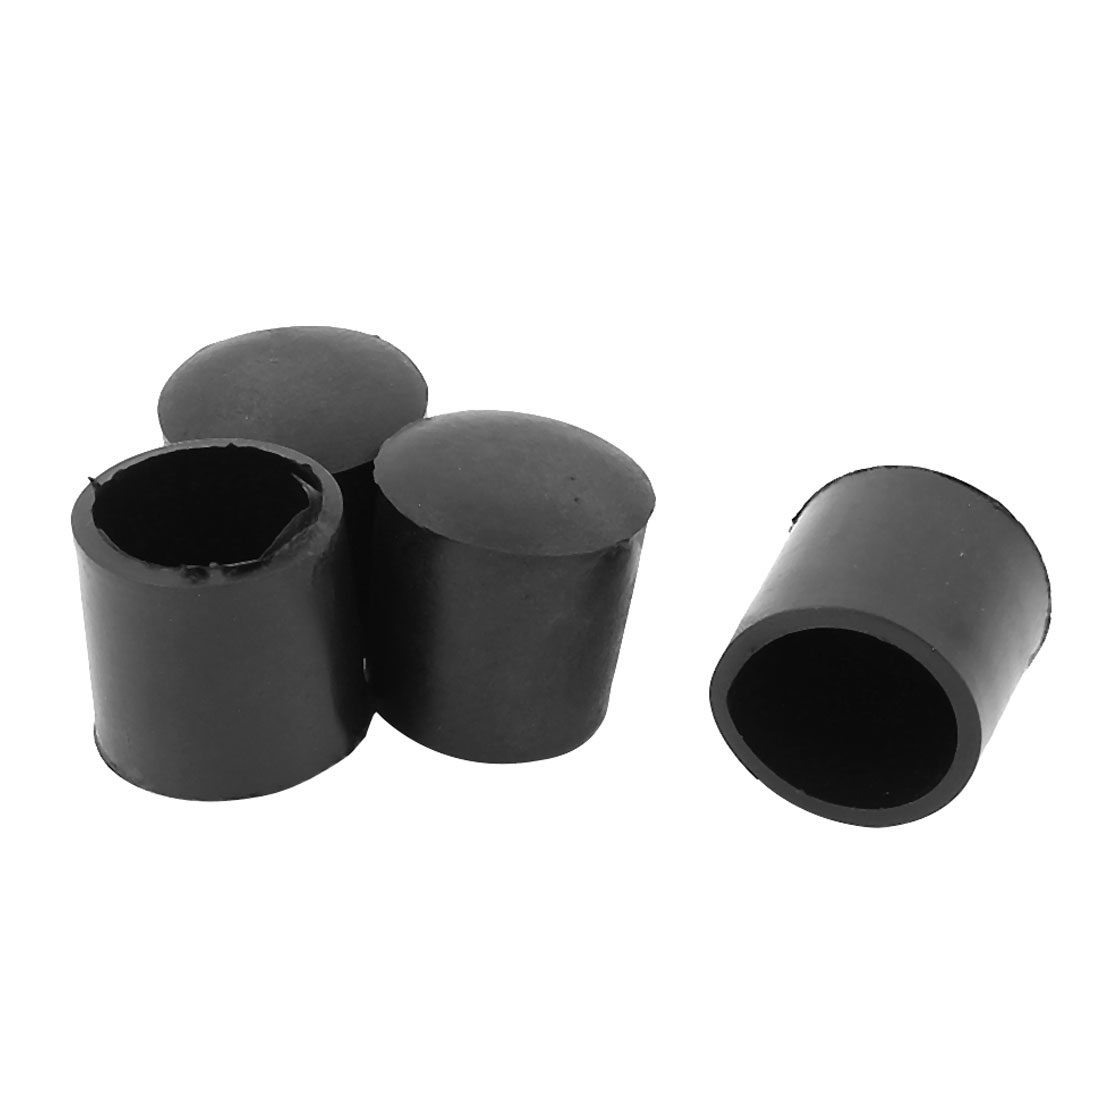 4Pcs Soft Rubber Round Table Chair Leg Foot Cover Holder 24mm Black